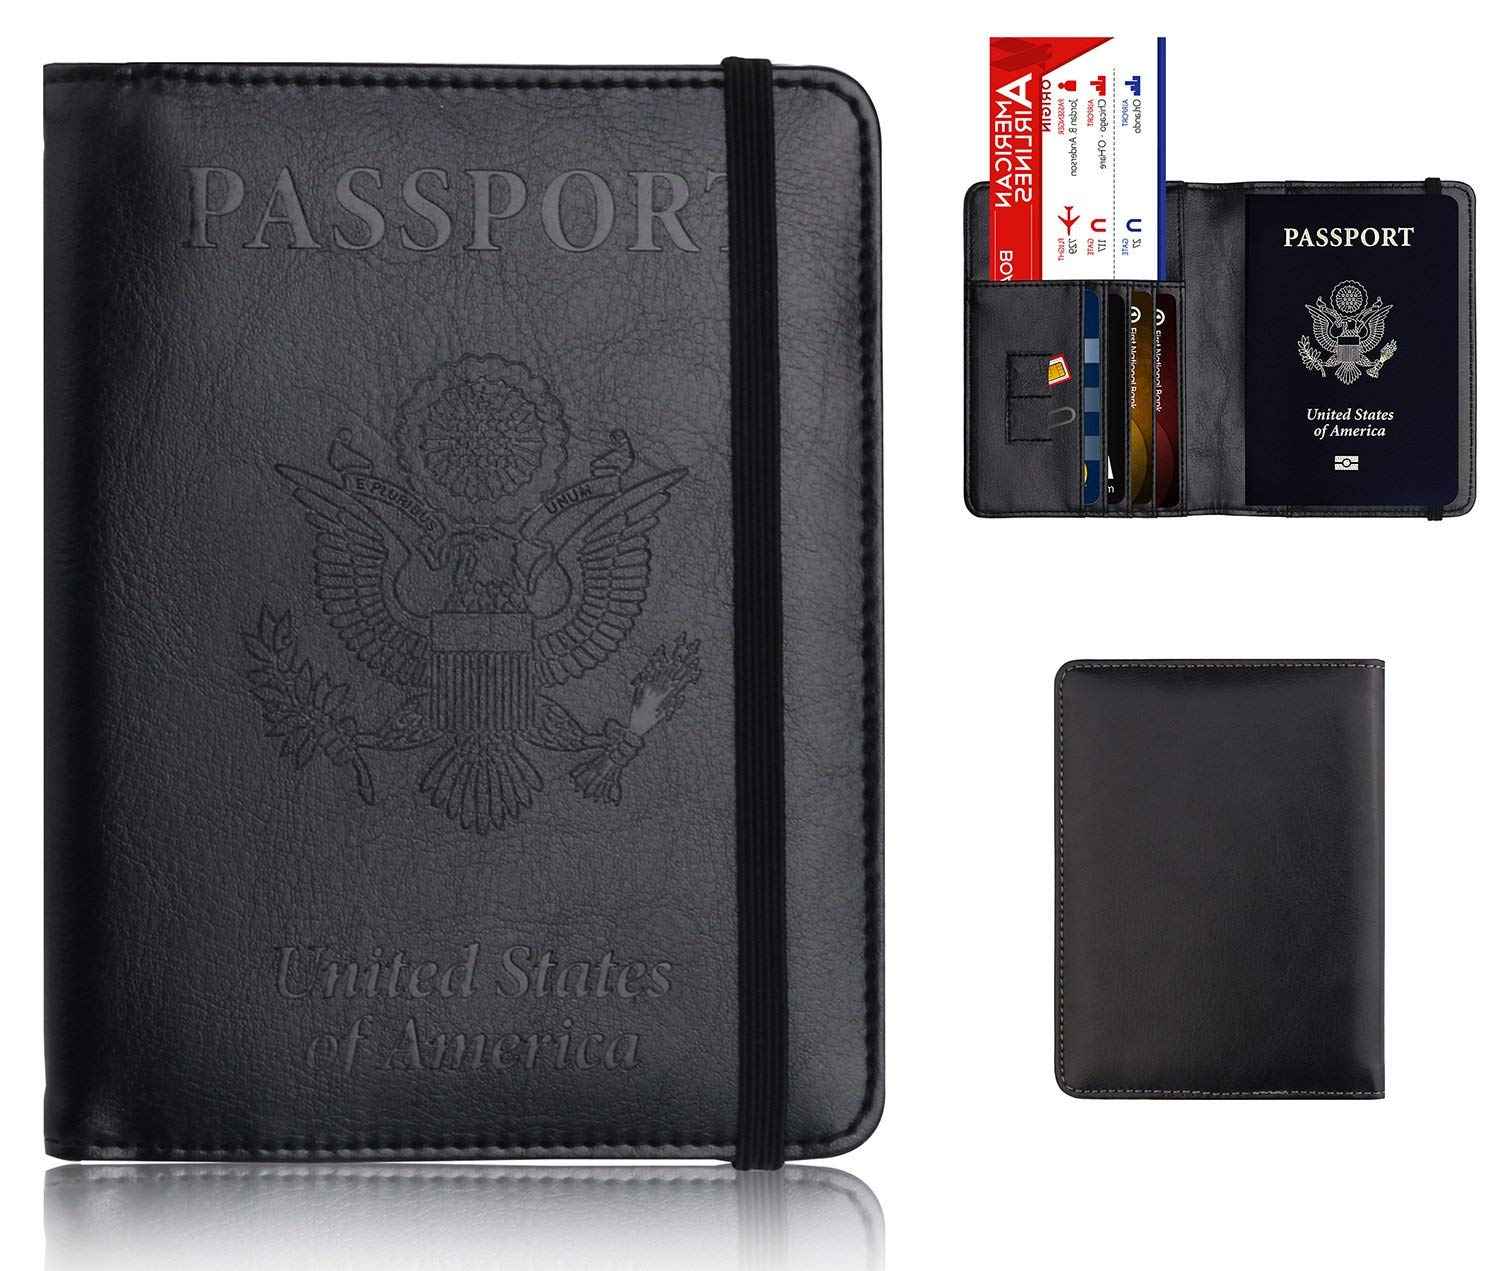 a6f9c106d Leather Passport Holder Cover Leather Rfid Blocking Passport Wallet Case  for Men Women With Elastic Band